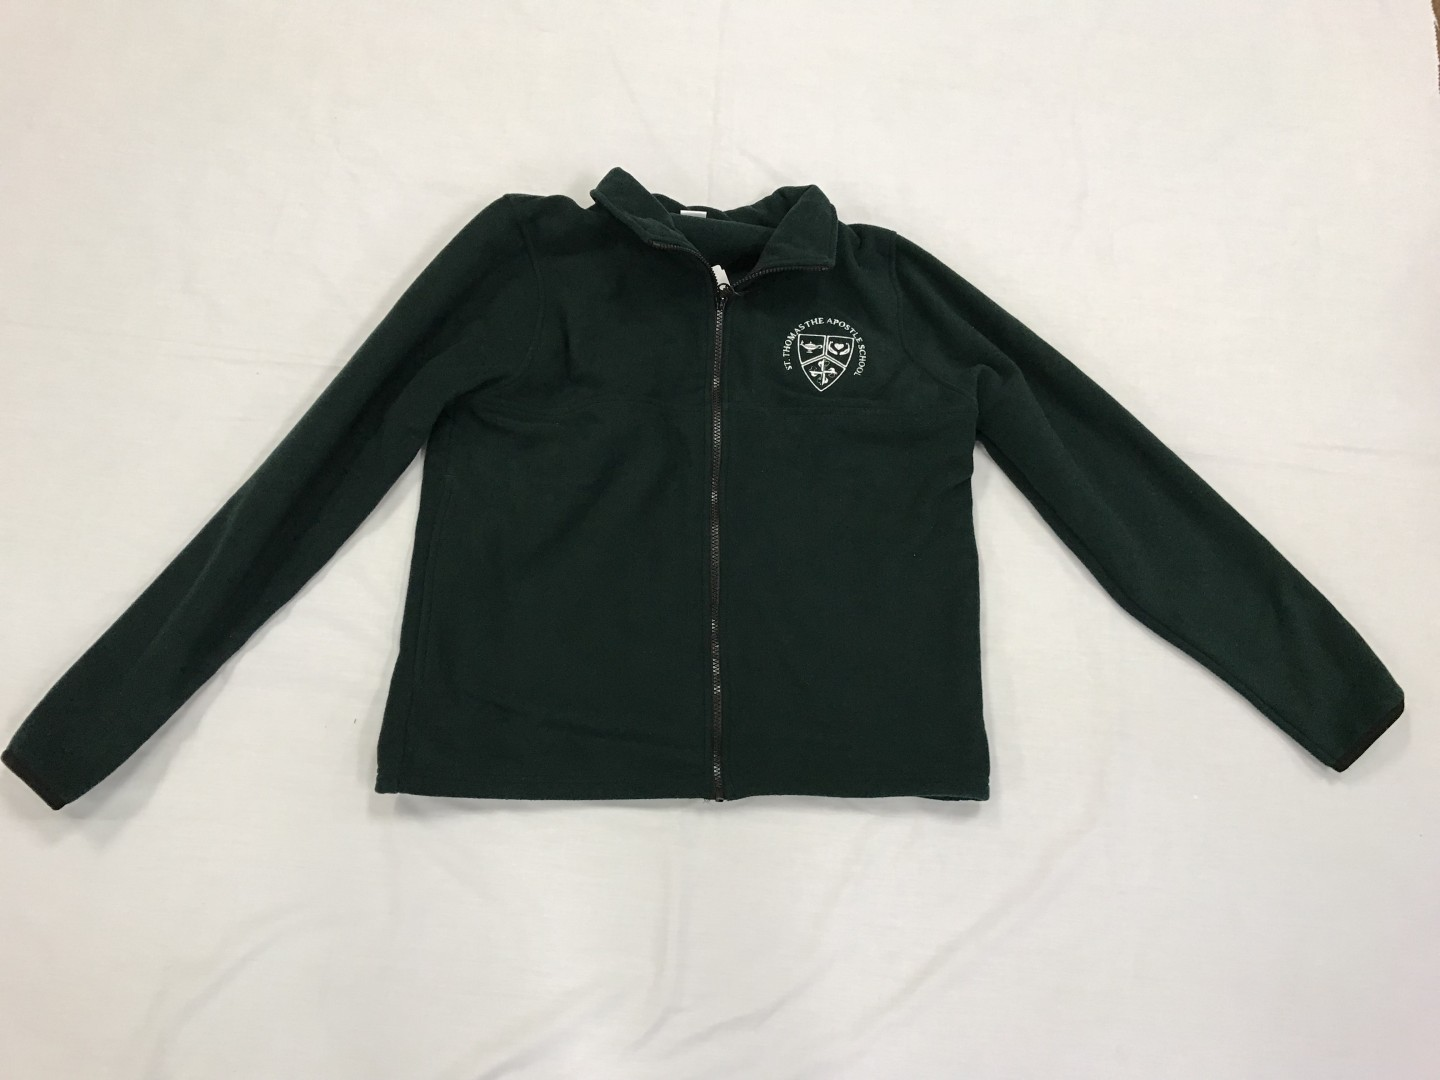 St. Thomas the Apostle Fleece Jacket